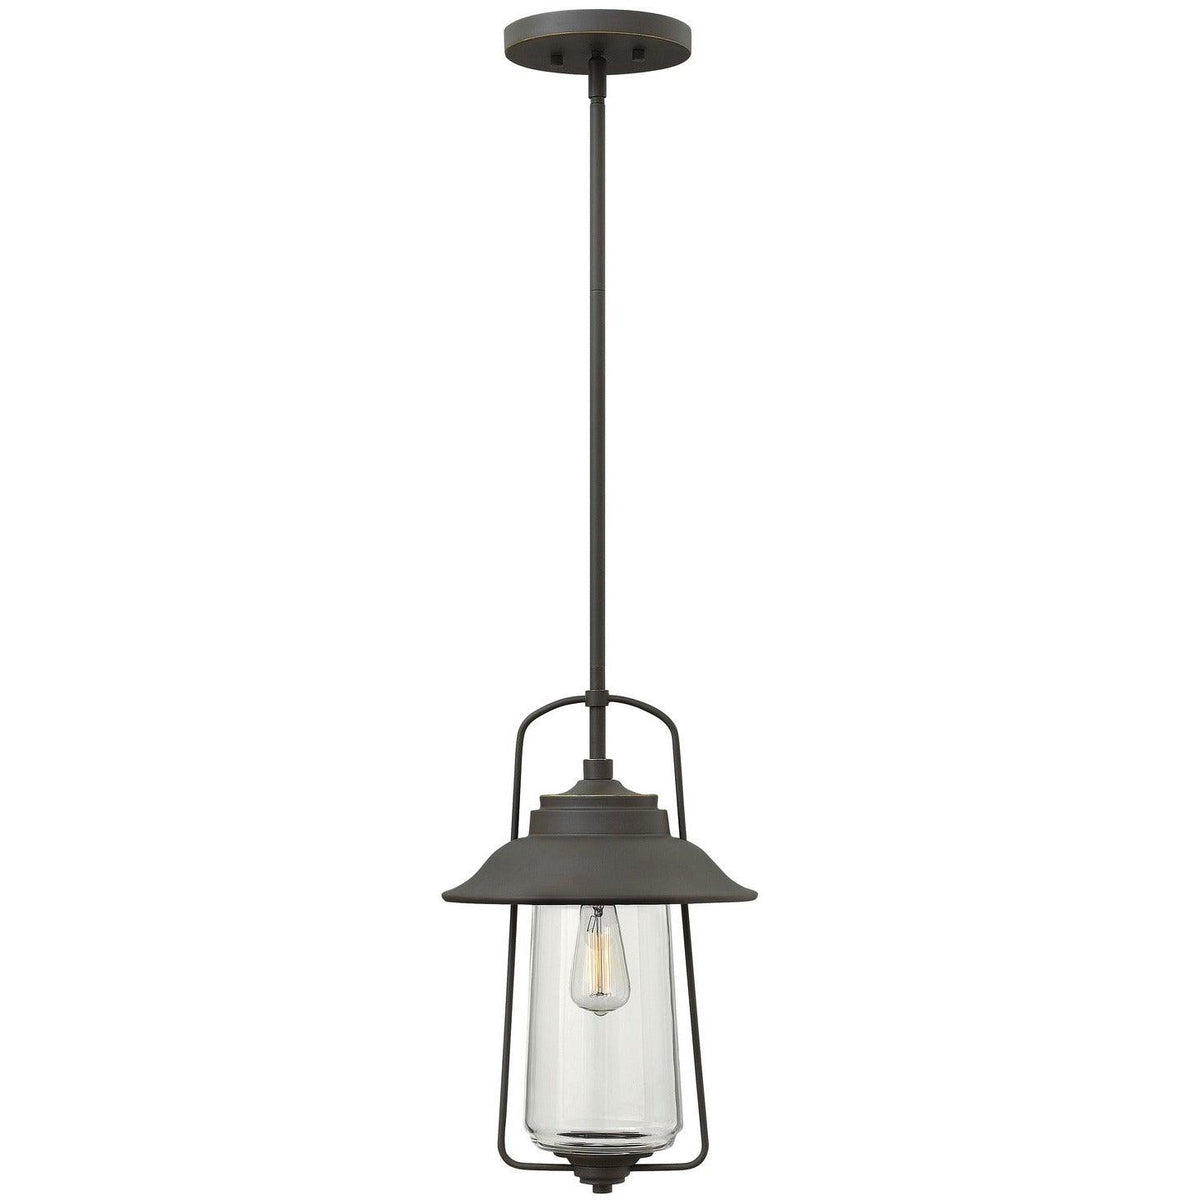 Hinkley Canada - 2862OZ - One Light Hanging Lantern - Belden Place - Oil Rubbed Bronze